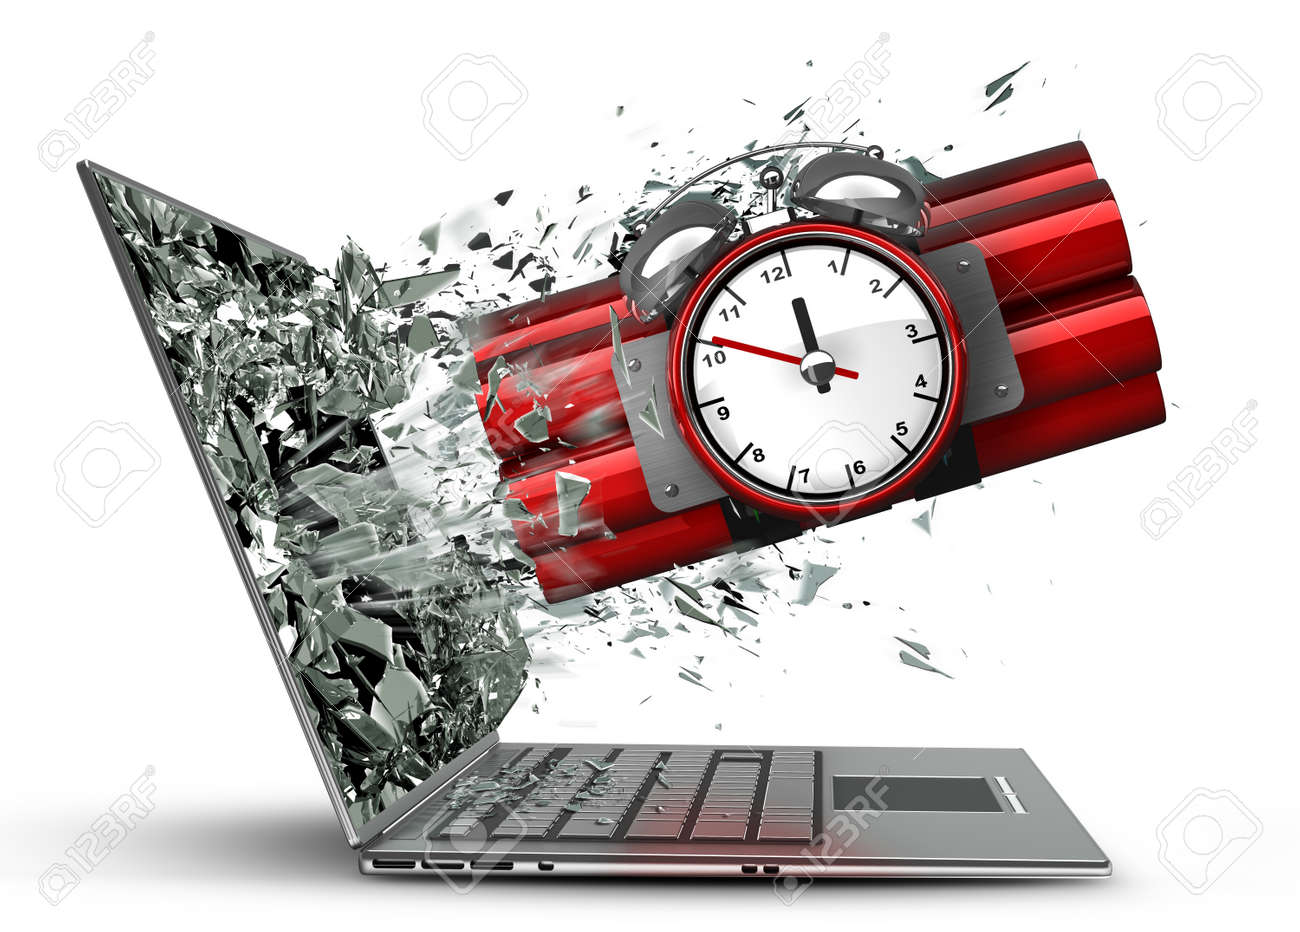 bomb with clock timer exit by a monitor of laptop screen isolated